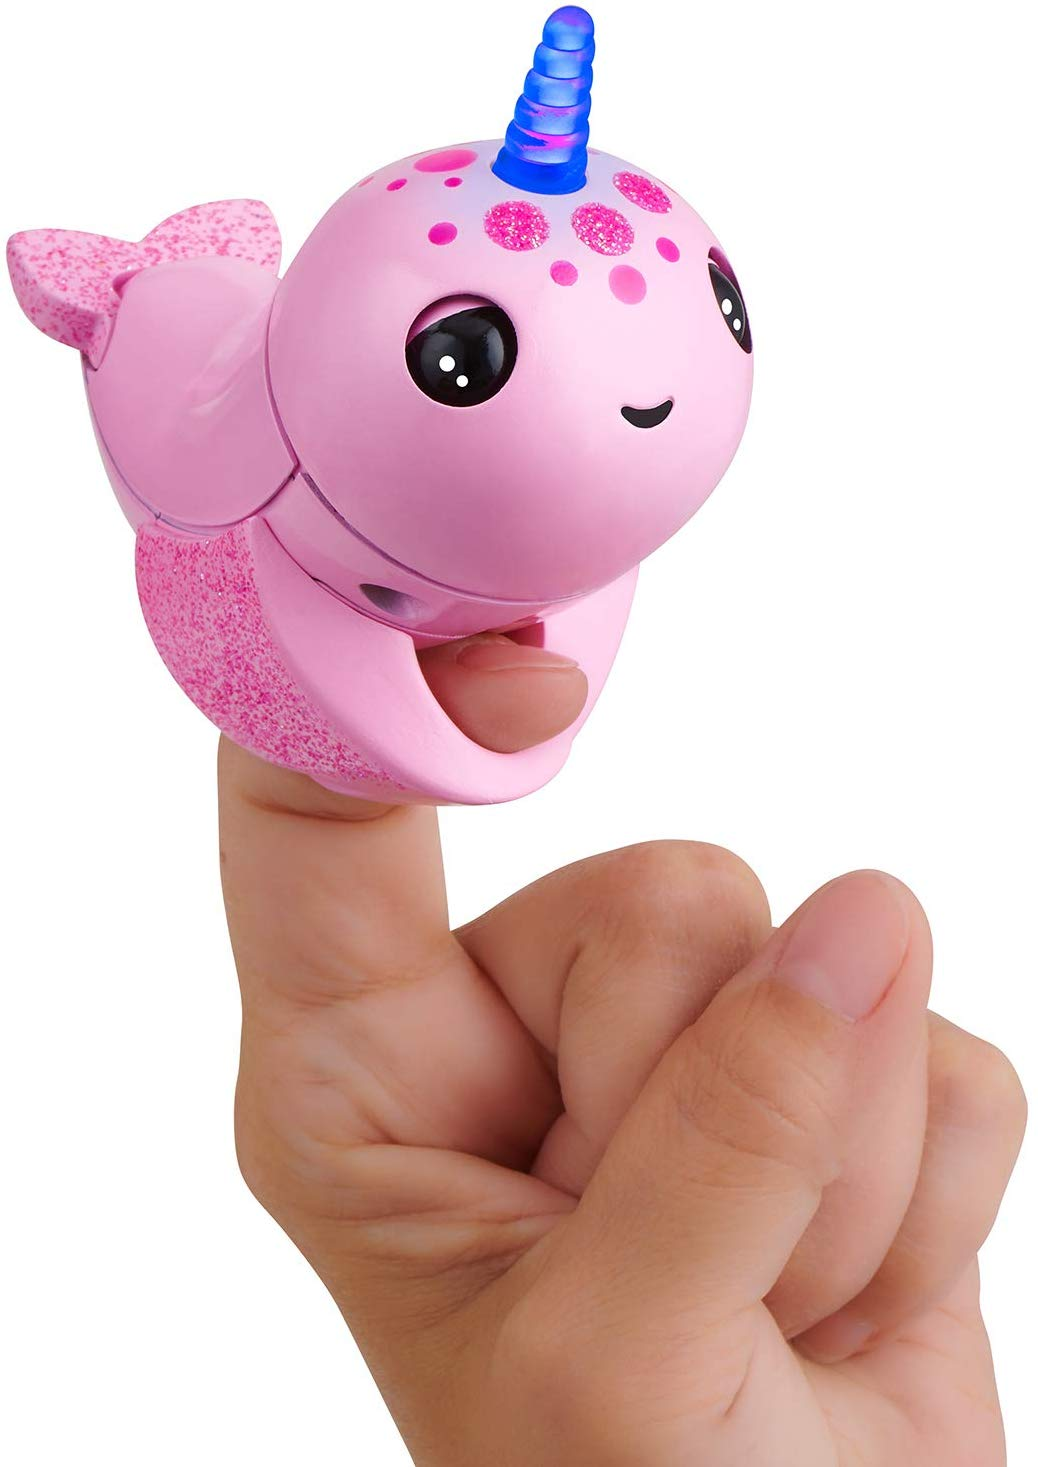 WowWee Fingerlings Light Up Narwhal for £6.99 on Amazon